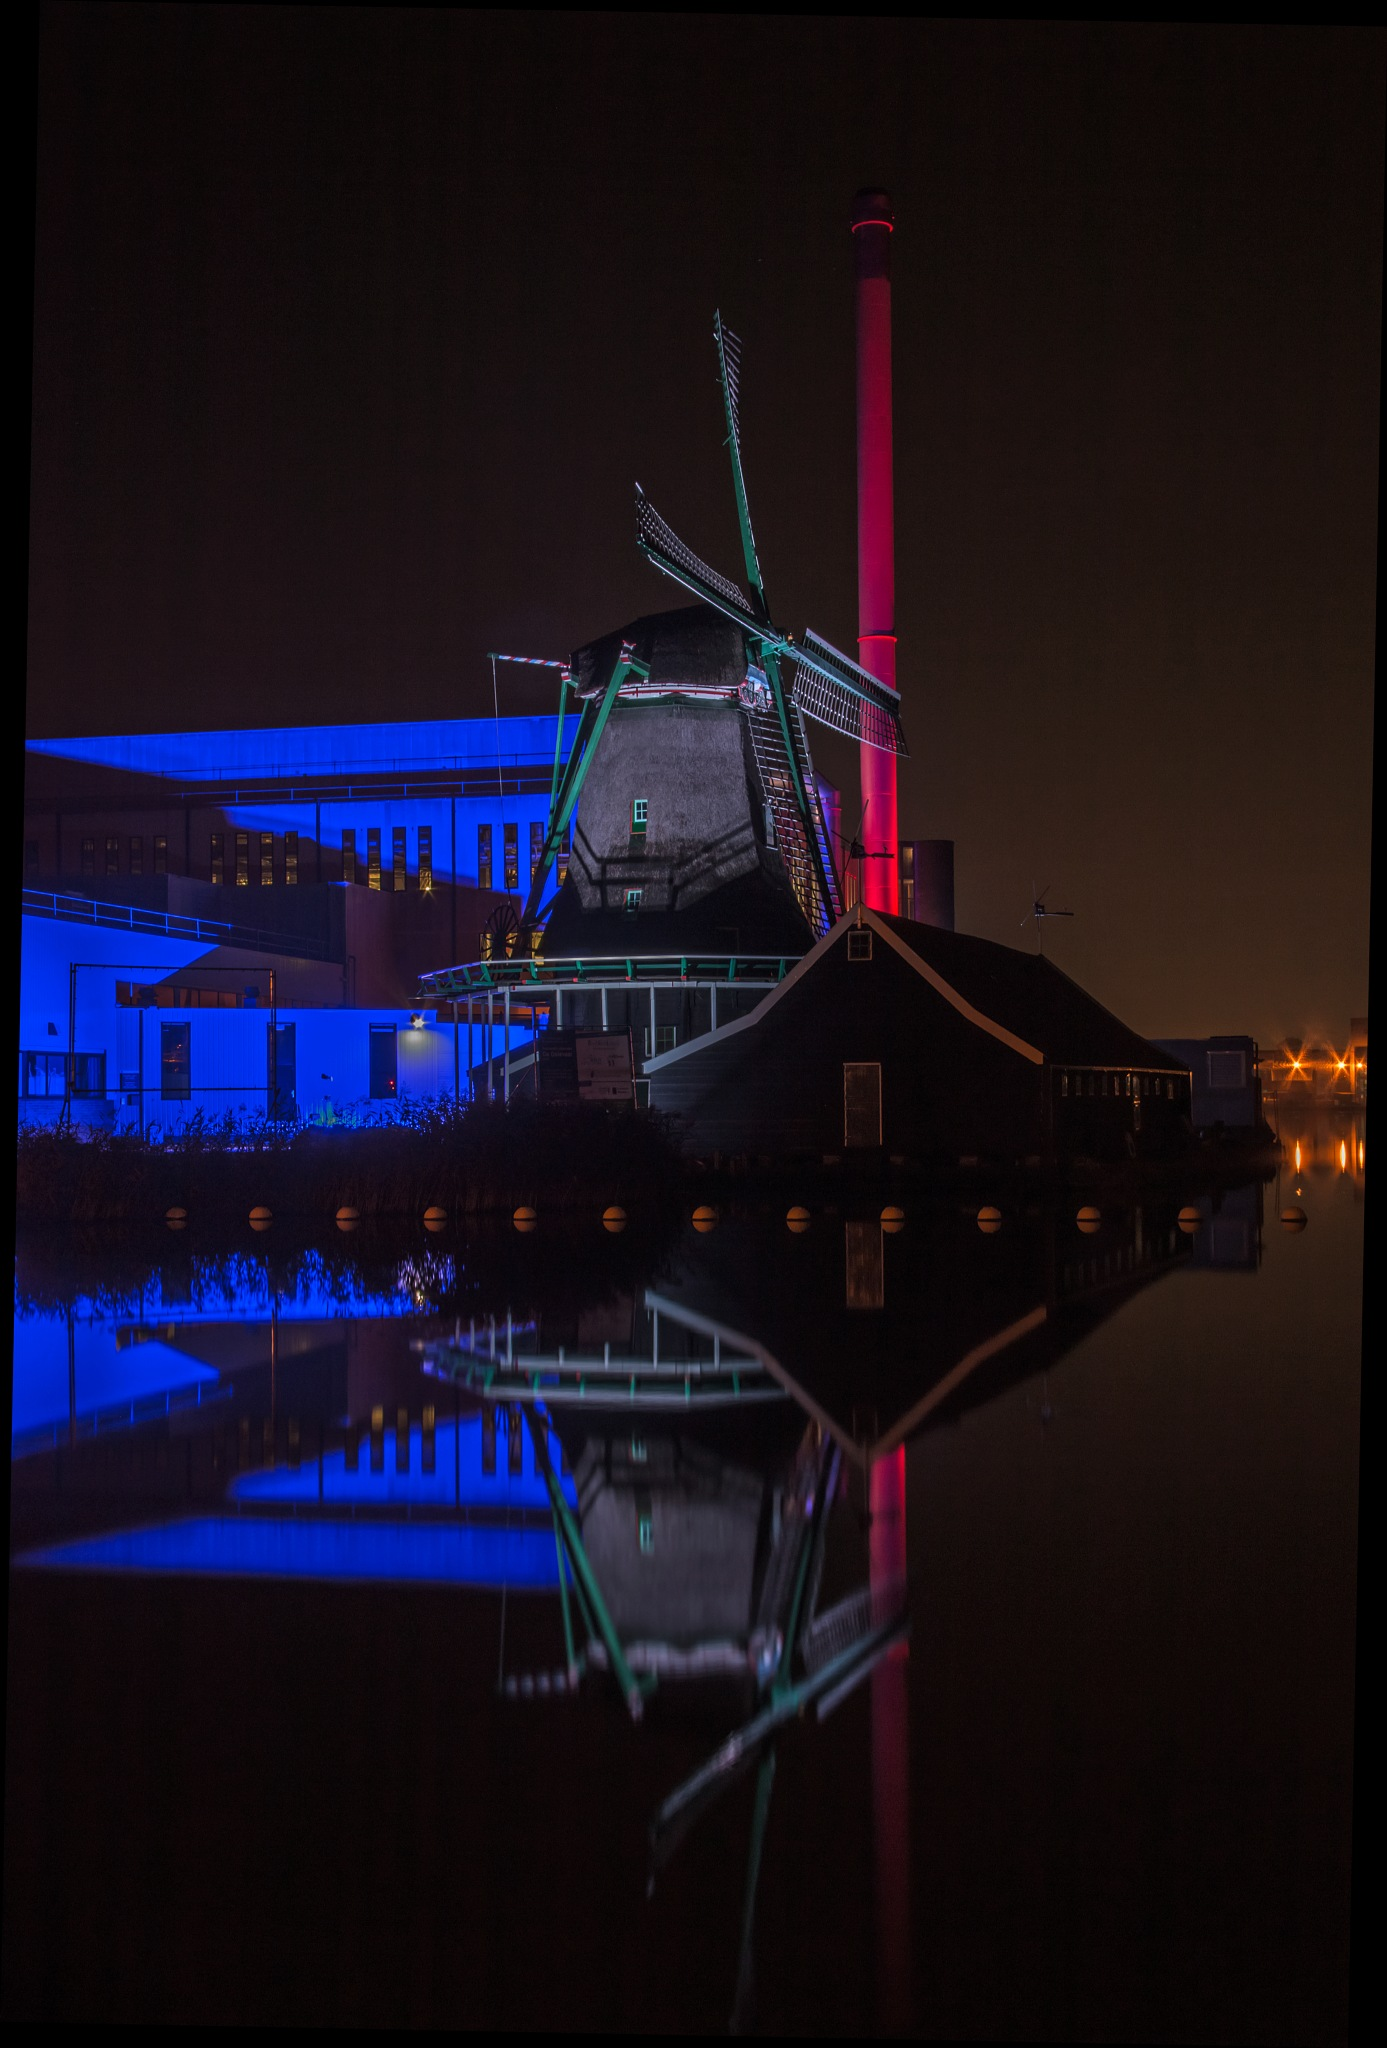 Duyvis Factory with old mill on the Zaan 4 by Sjaak Buis